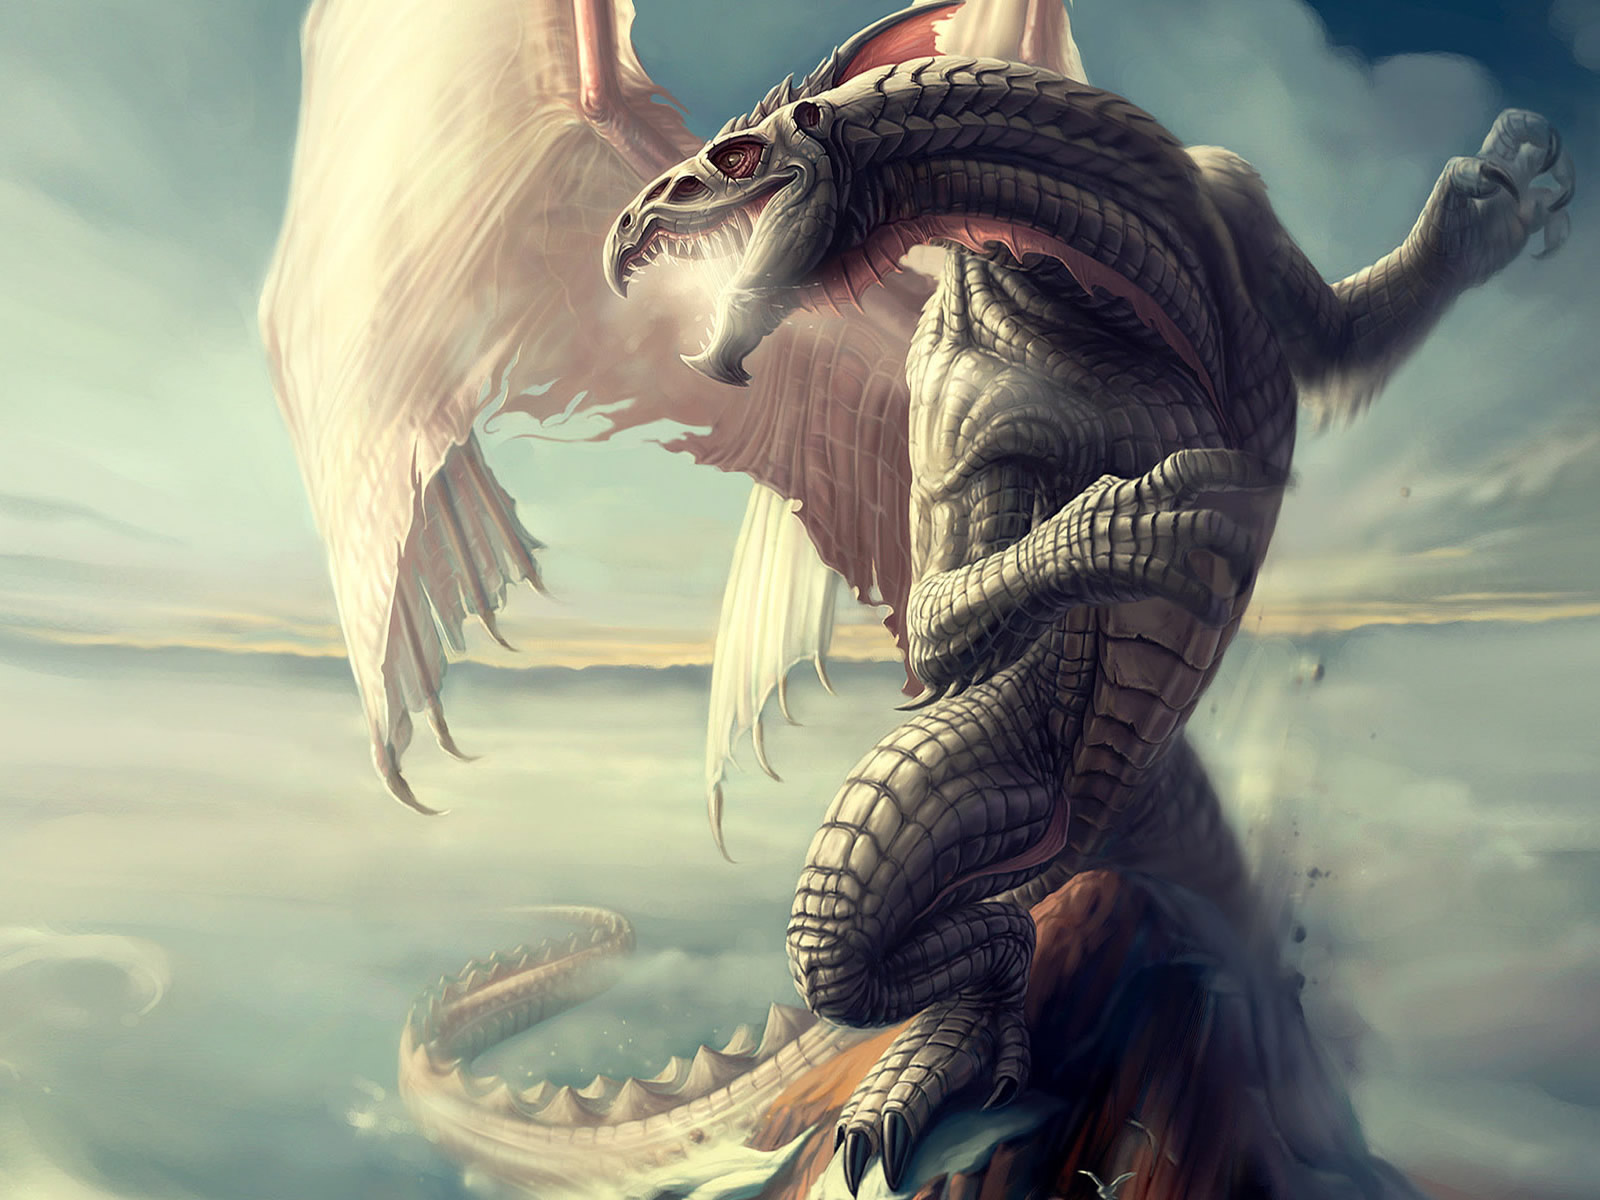 3D Dragon Fantacy HD Wallpaper 3D Abstract Wallpapers 1600x1200